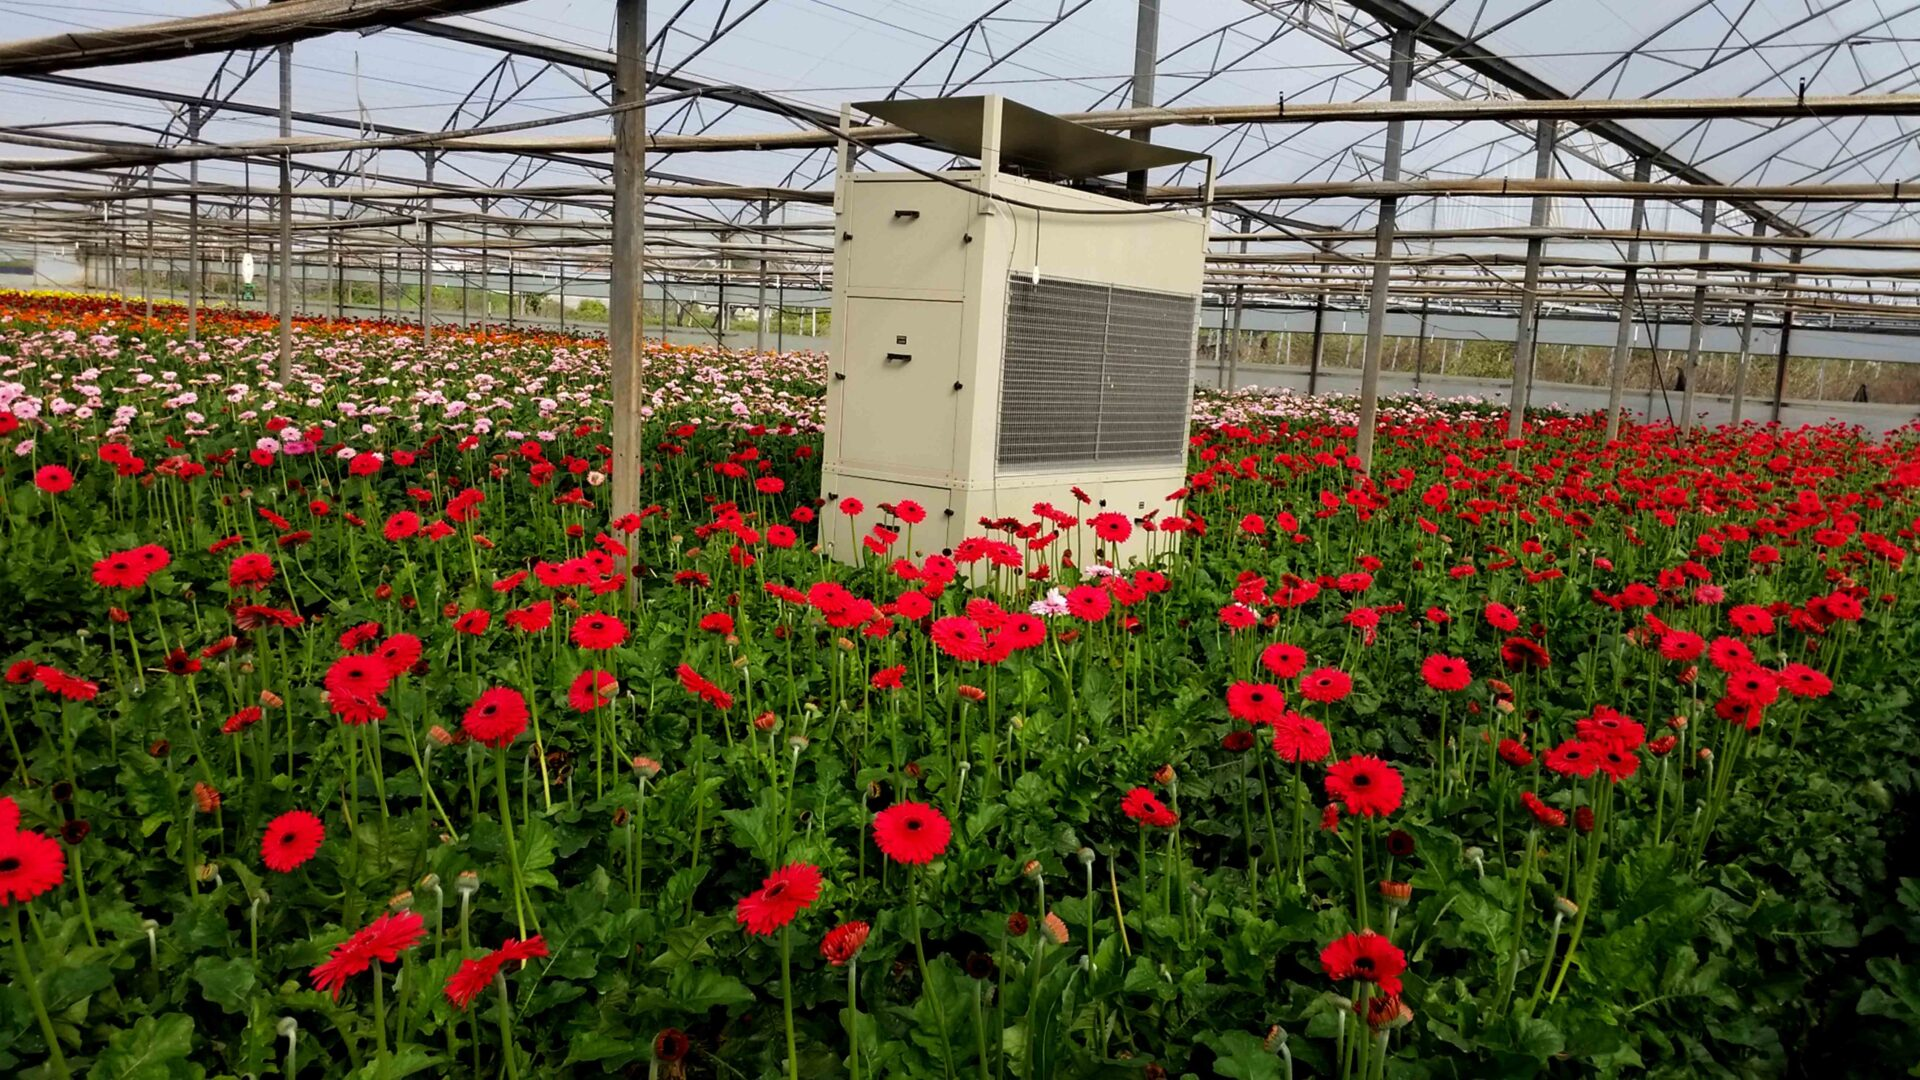 red flowers with drygair dehumidifier in the center